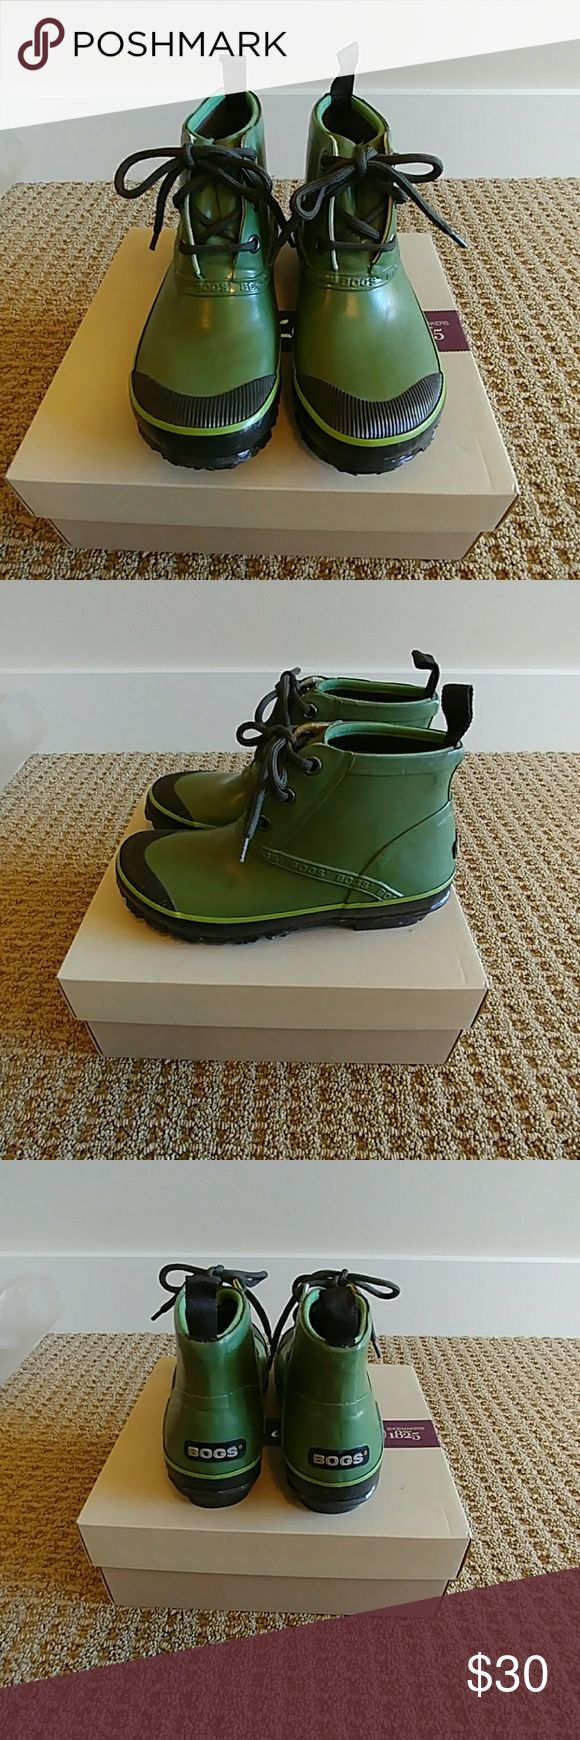 Bogs Rain Boots Great for rainy and light snowy weather or even yardwork, worn once, in excellent condition. Bogs Shoes Winter & Rain Boots